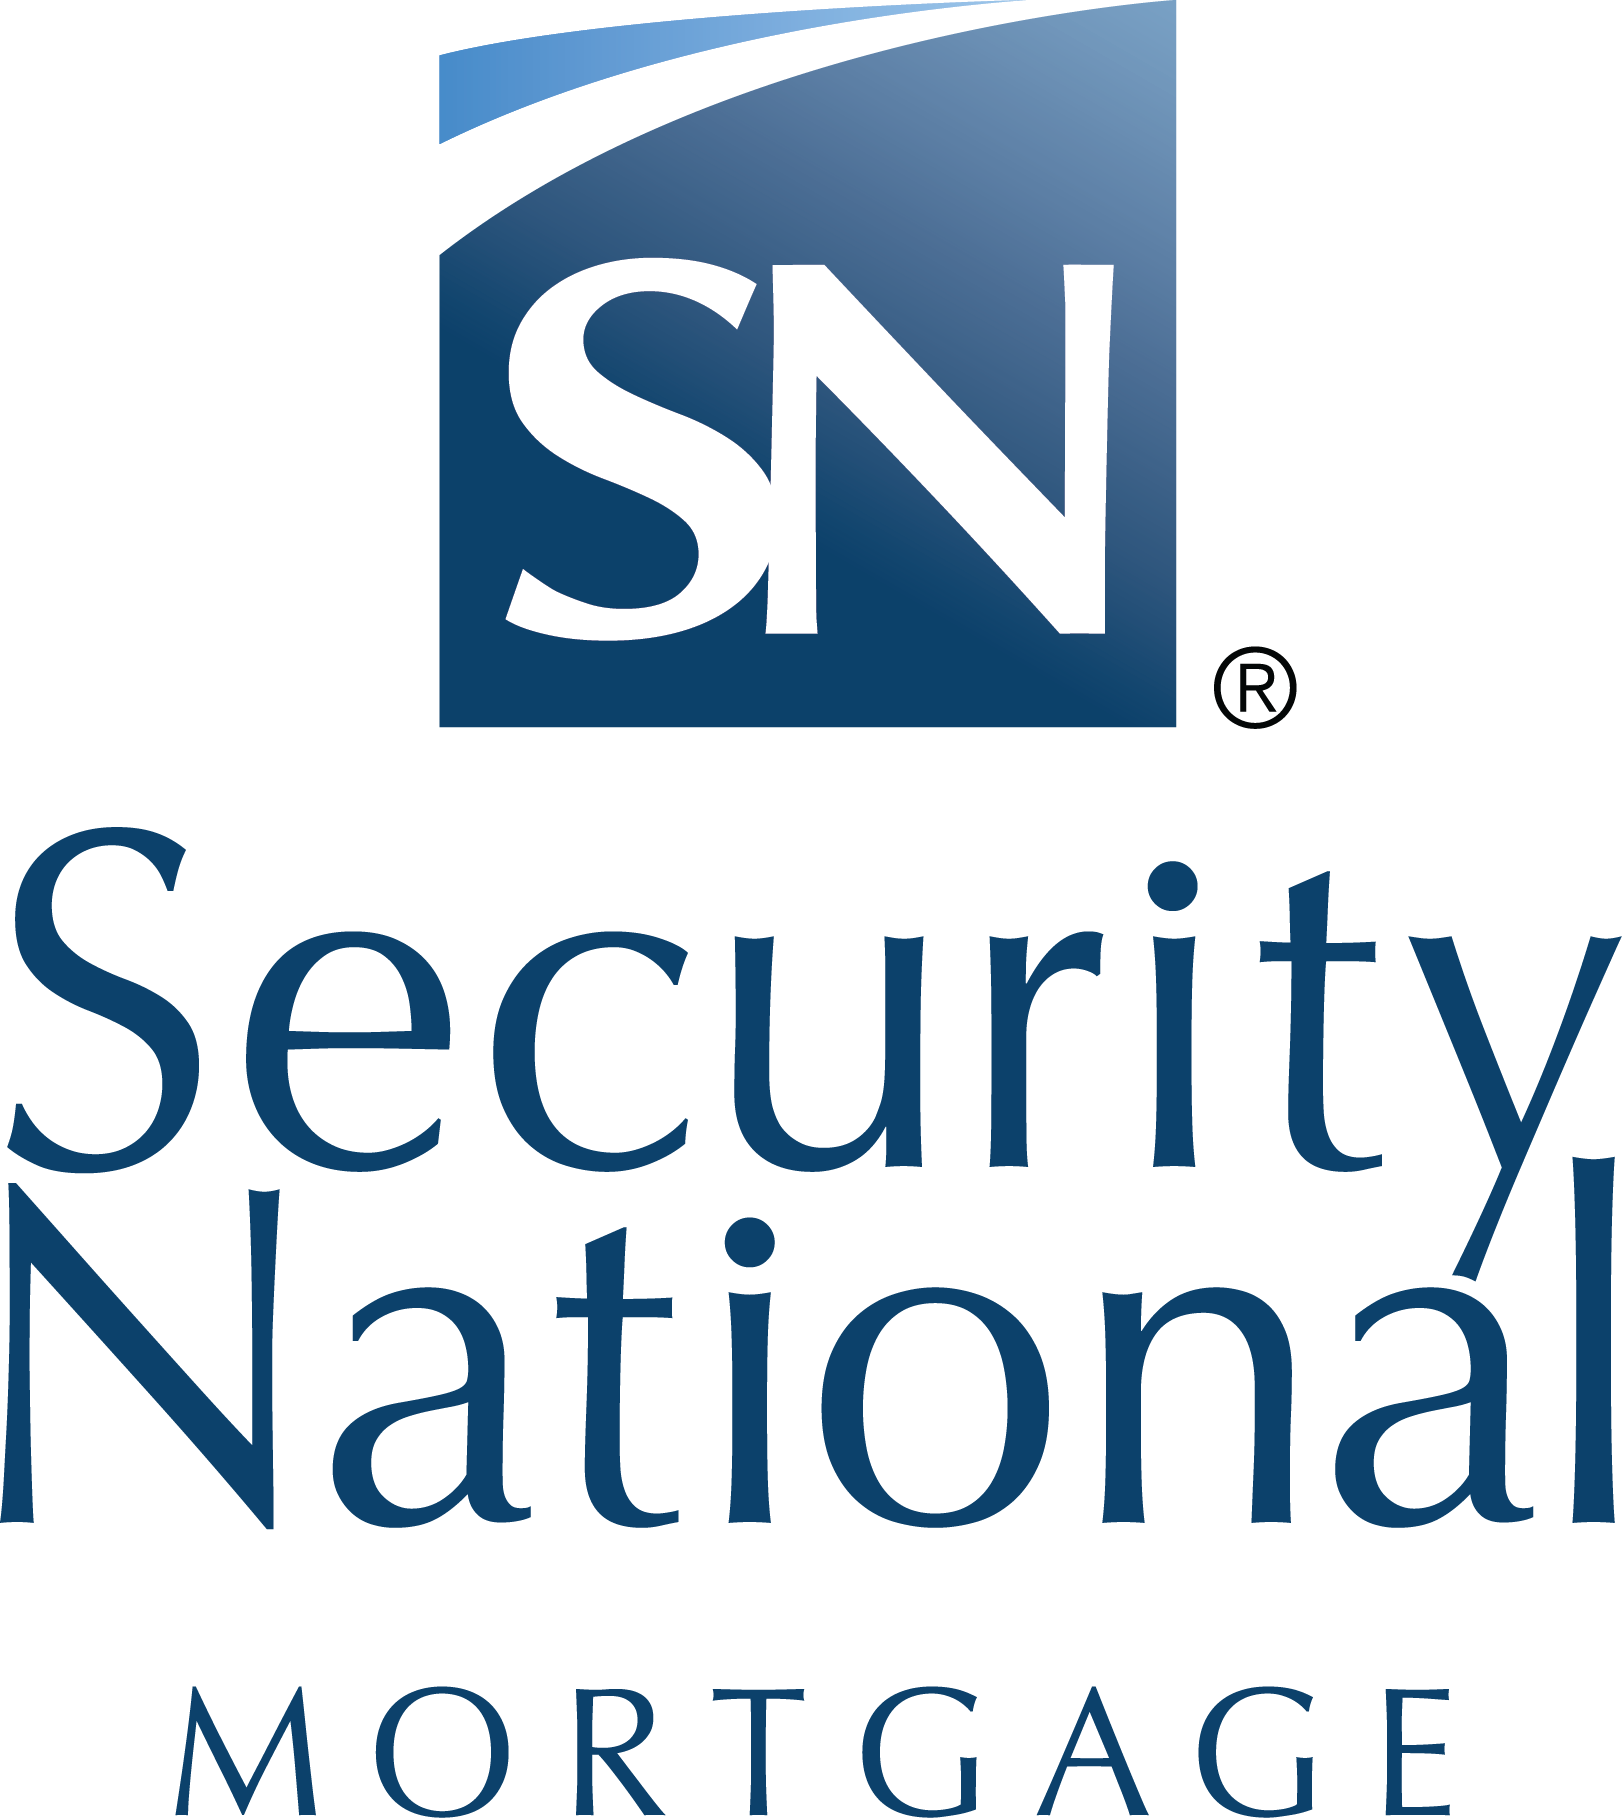 SecurityNational Mortgage Company logo